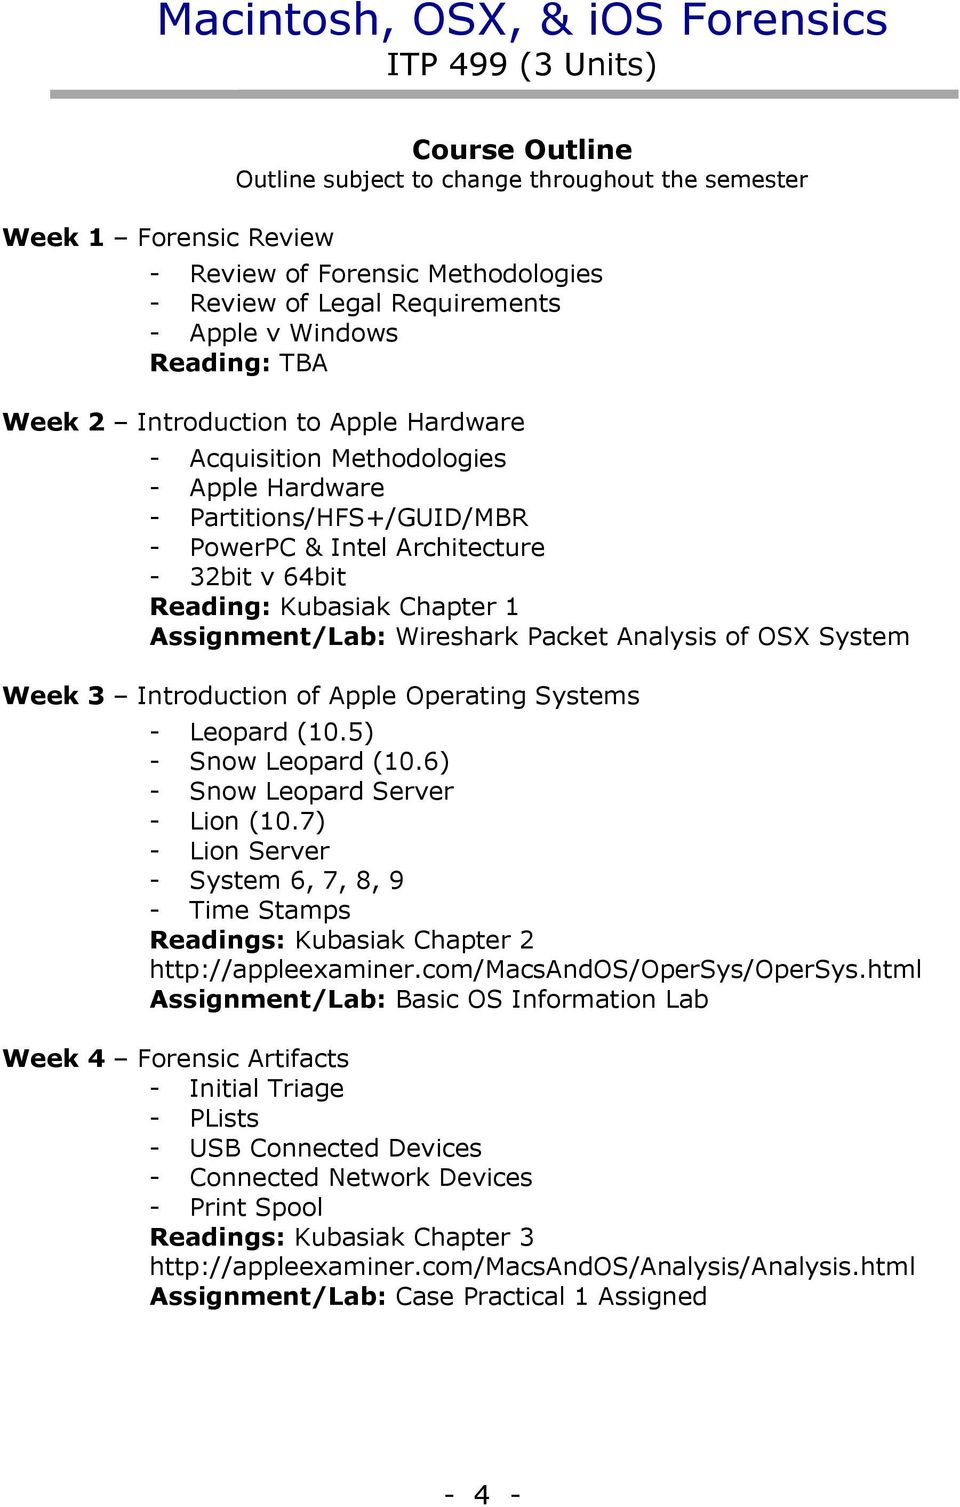 64bit Reading: Kubasiak Chapter 1 Assignment/Lab: Wireshark Packet Analysis of OSX System Week 3 Introduction of Apple Operating Systems - Leopard (10.5) - Snow Leopard (10.